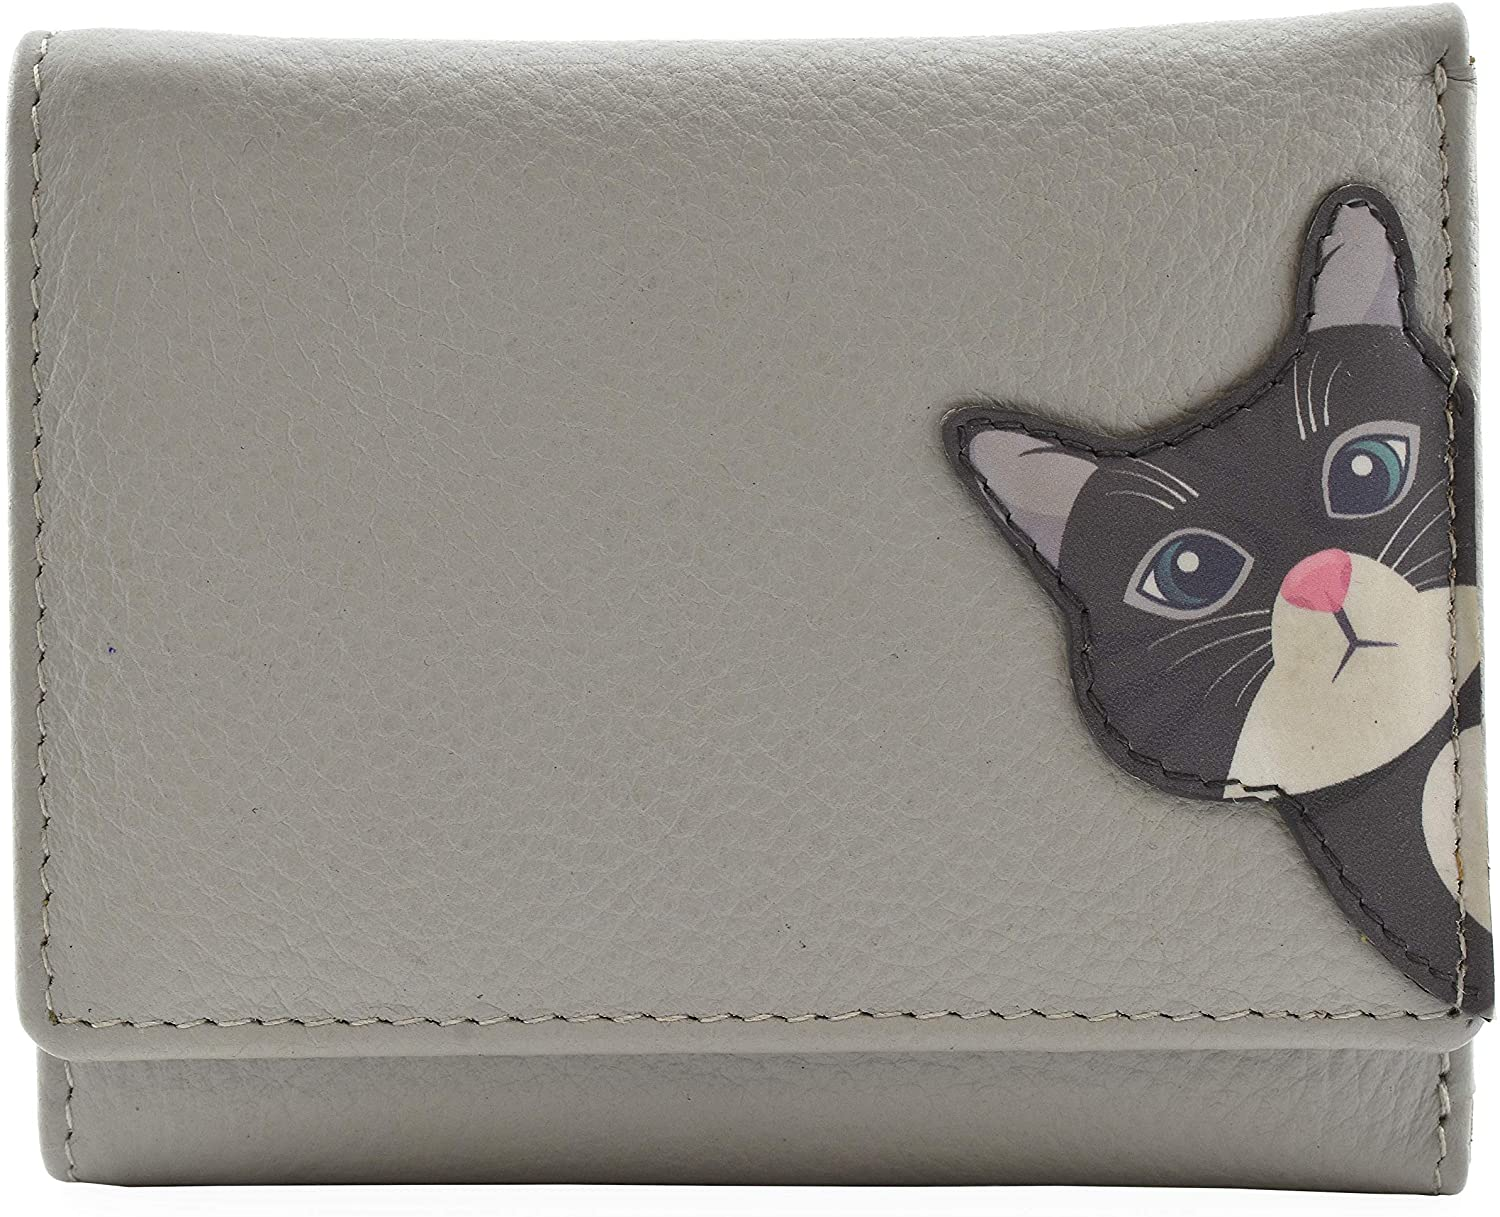 Mala Leather Cleo the Cat Small Tri Fold Cat Purse Grey